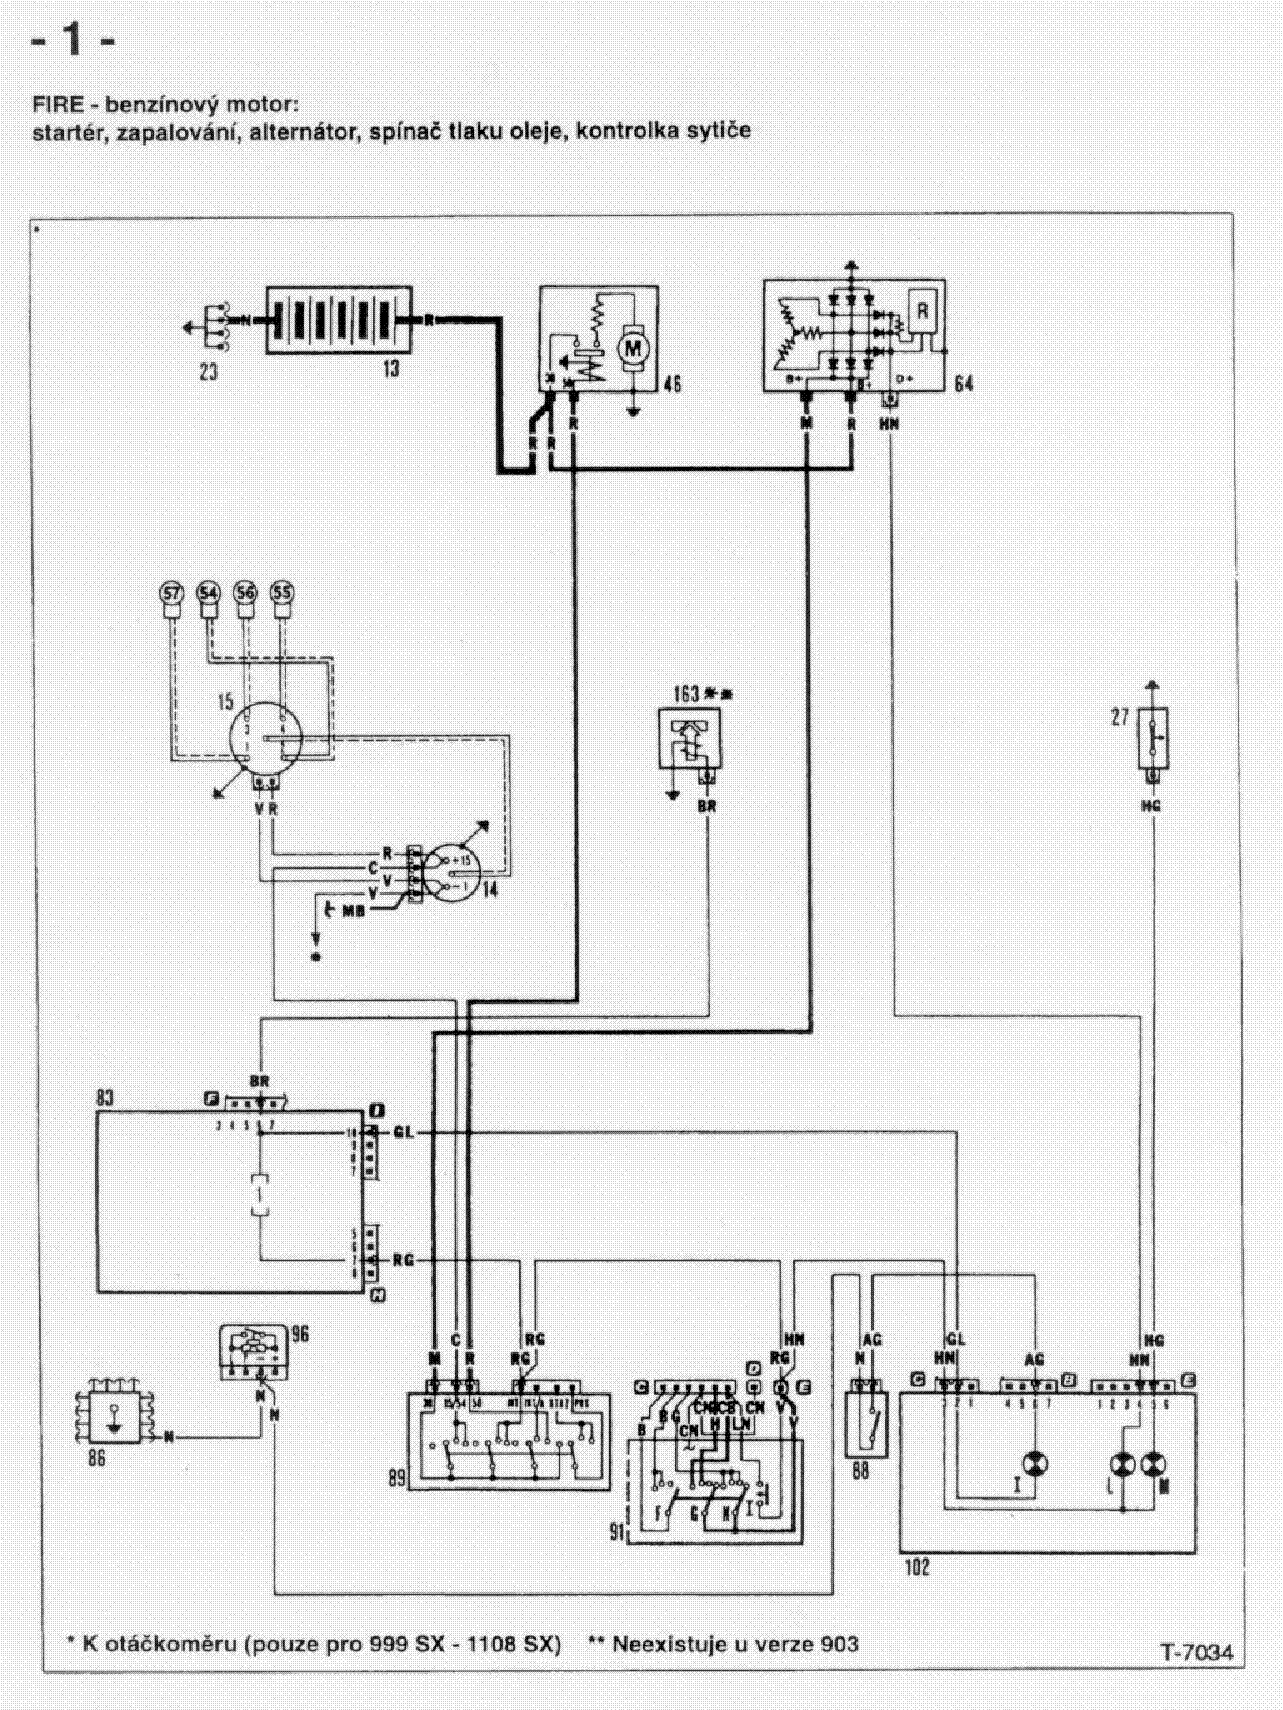 fiat uno wiring diagram service manual download schematics eeprom rh  elektrotanya com fiat punto electrical wiring diagram fiat punto wiring  diagram mk2